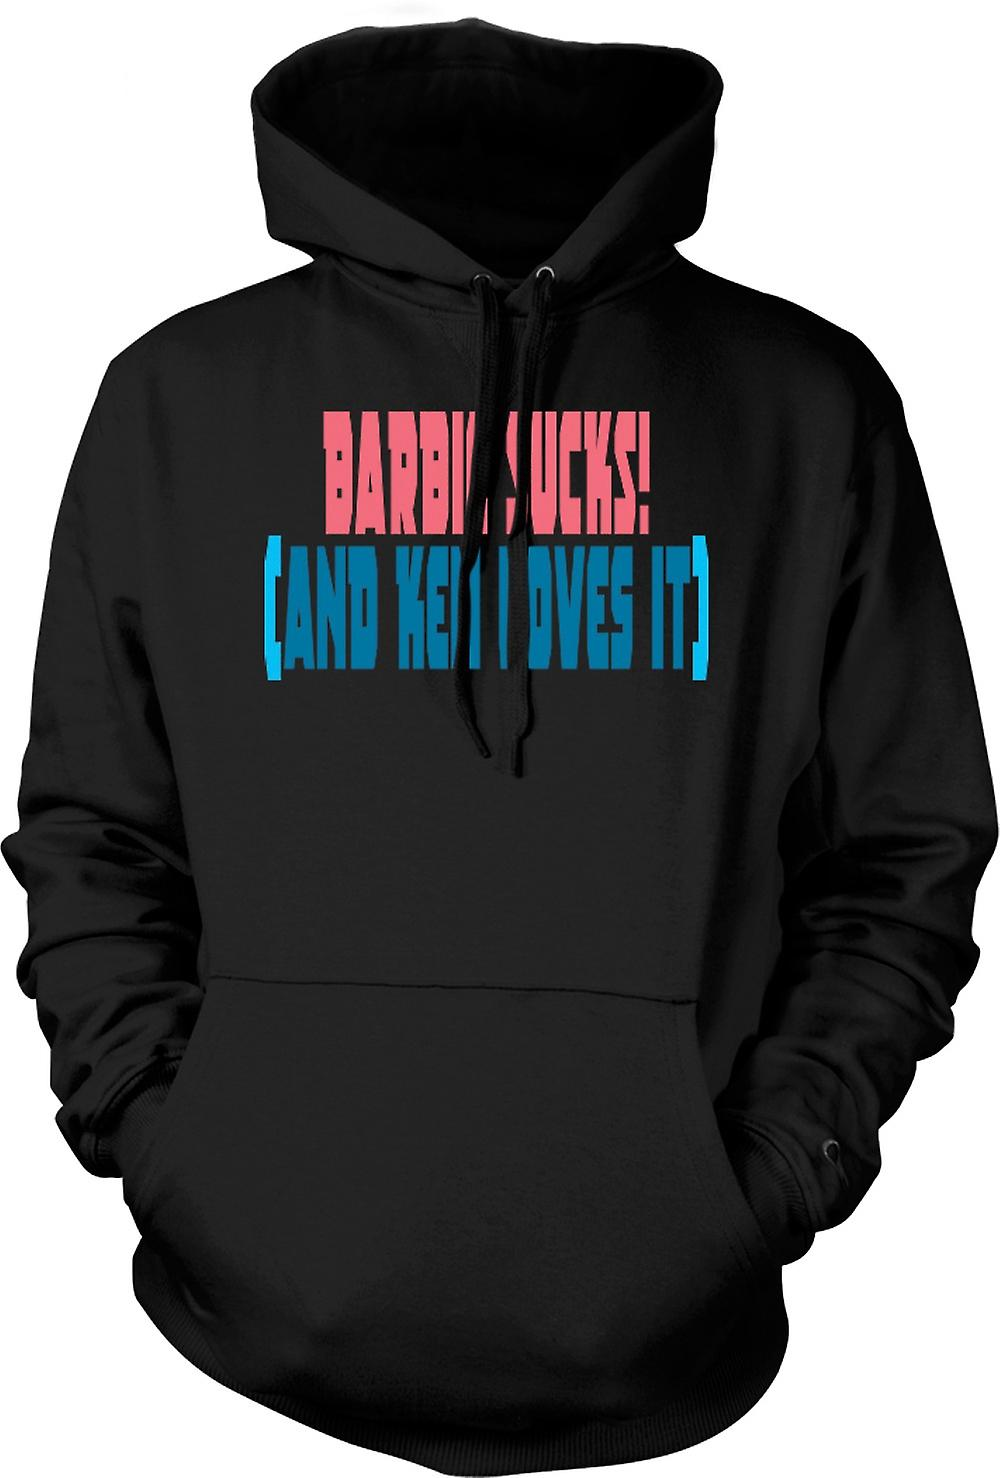 Mens Hoodie - Barbie Sucks! (Et Ken aime) - Quote